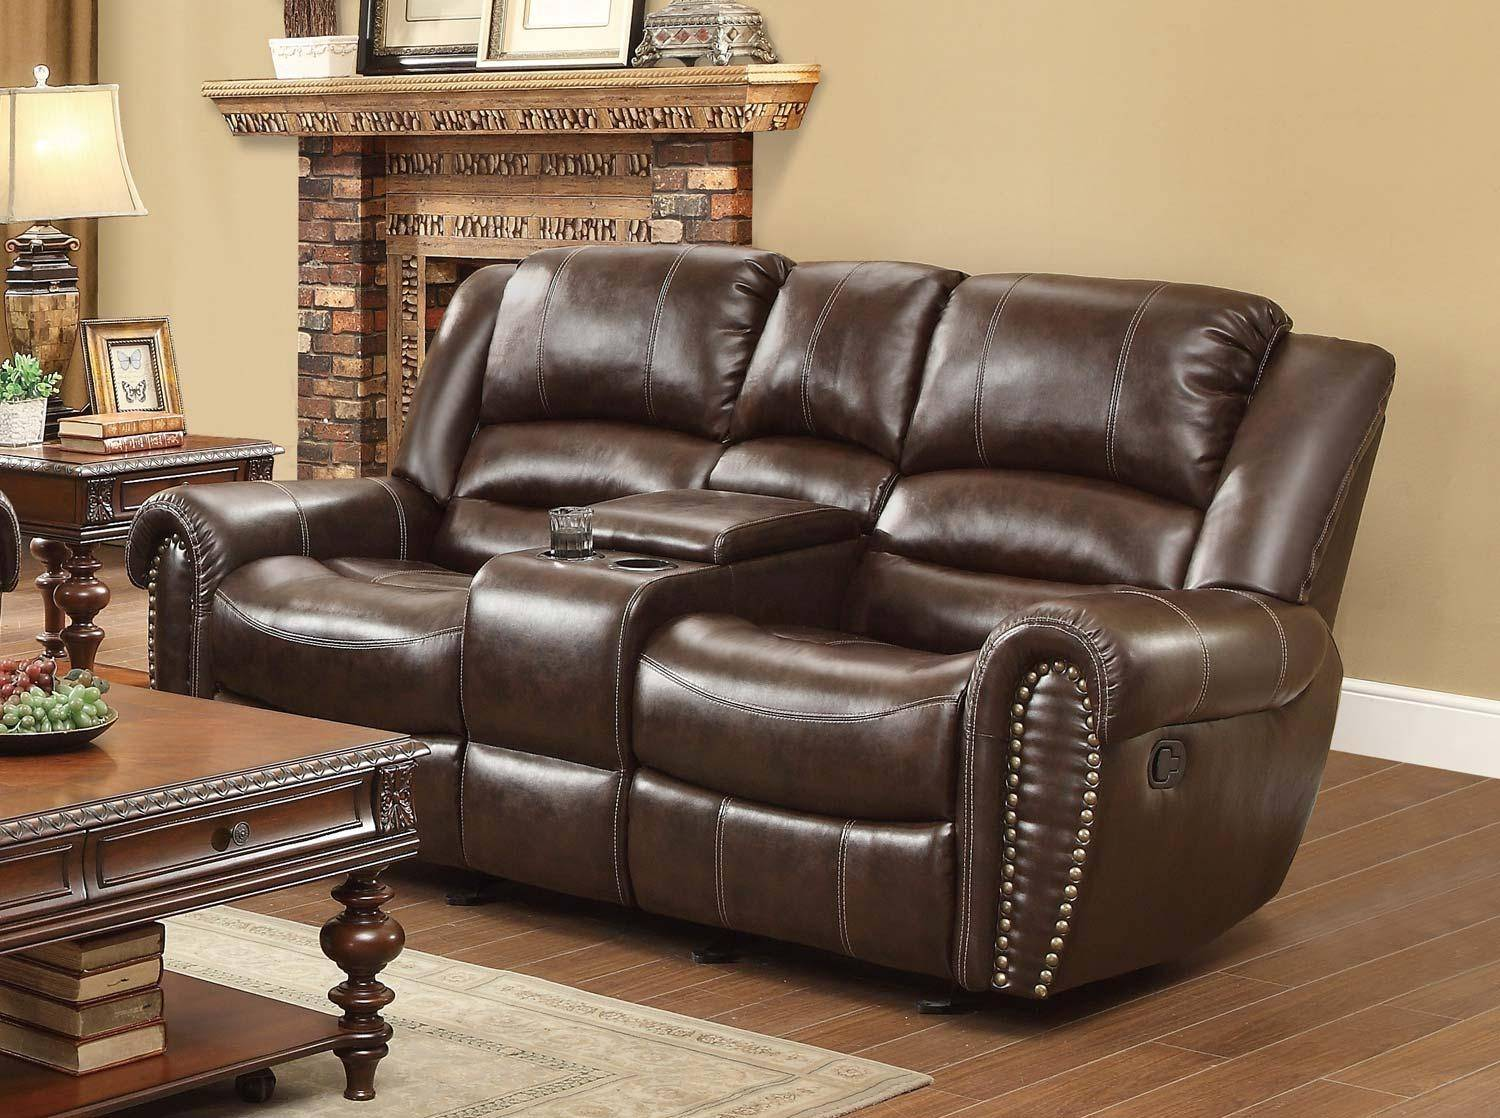 Homelegance Center Hill Brown Bonded Leather Power Dual Reclining ...